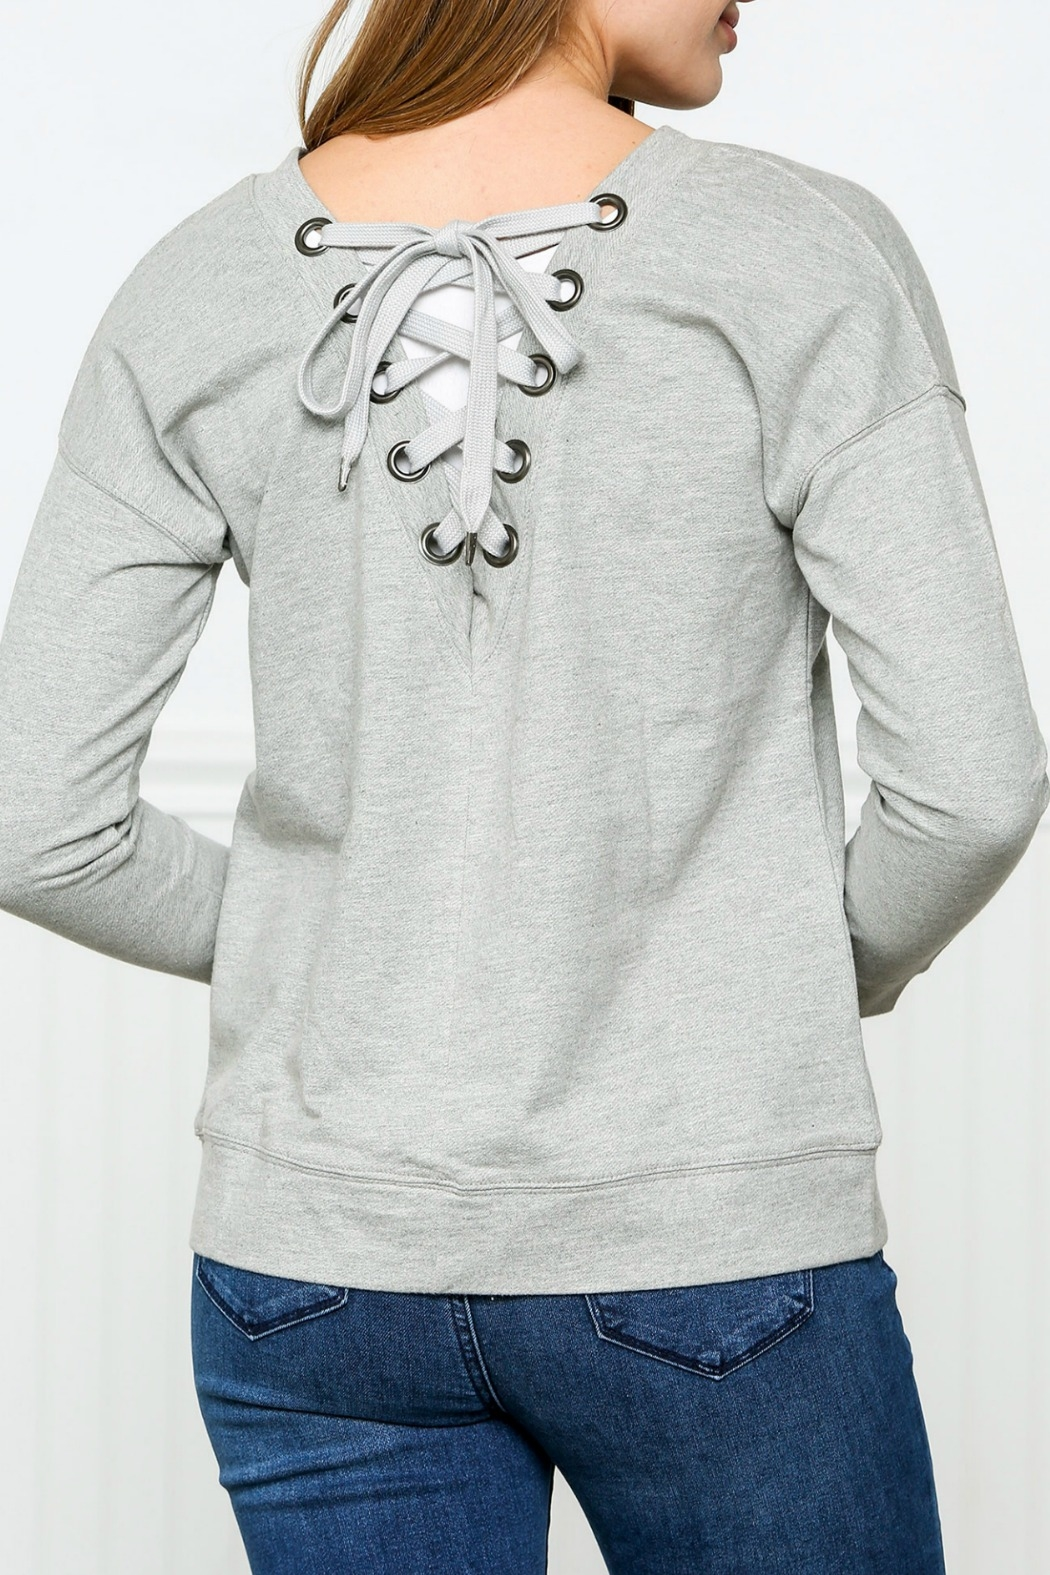 Down East Laced Back Sweatshirt - Front Full Image